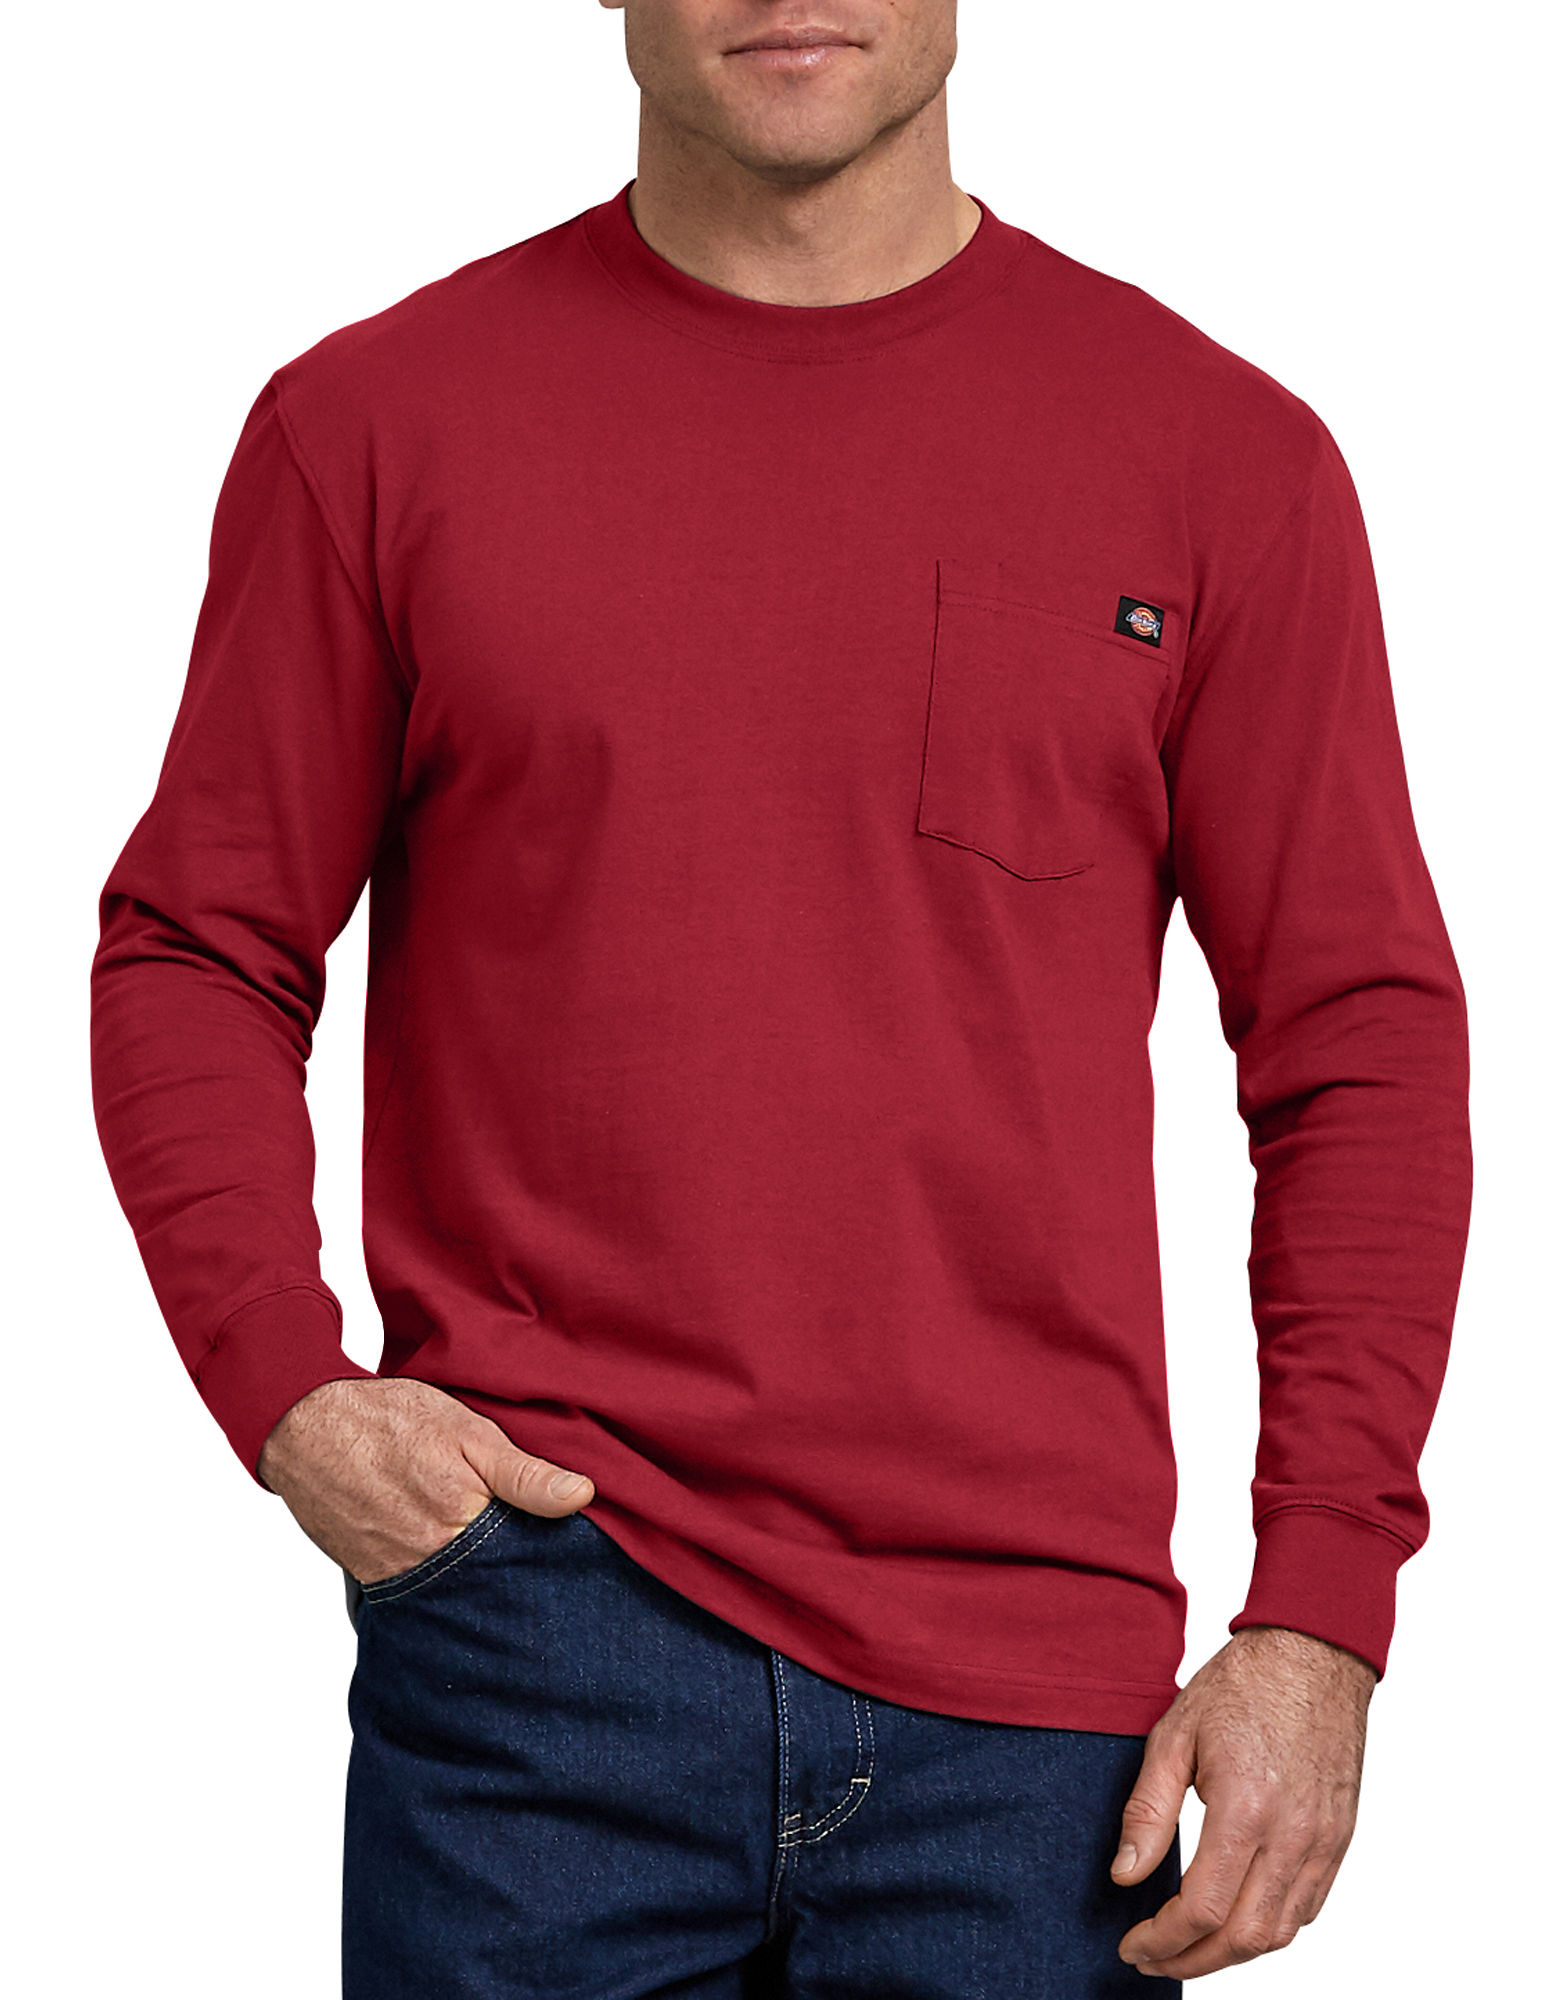 Long Sleeve T Shirt for Men English Red XL| Dickies